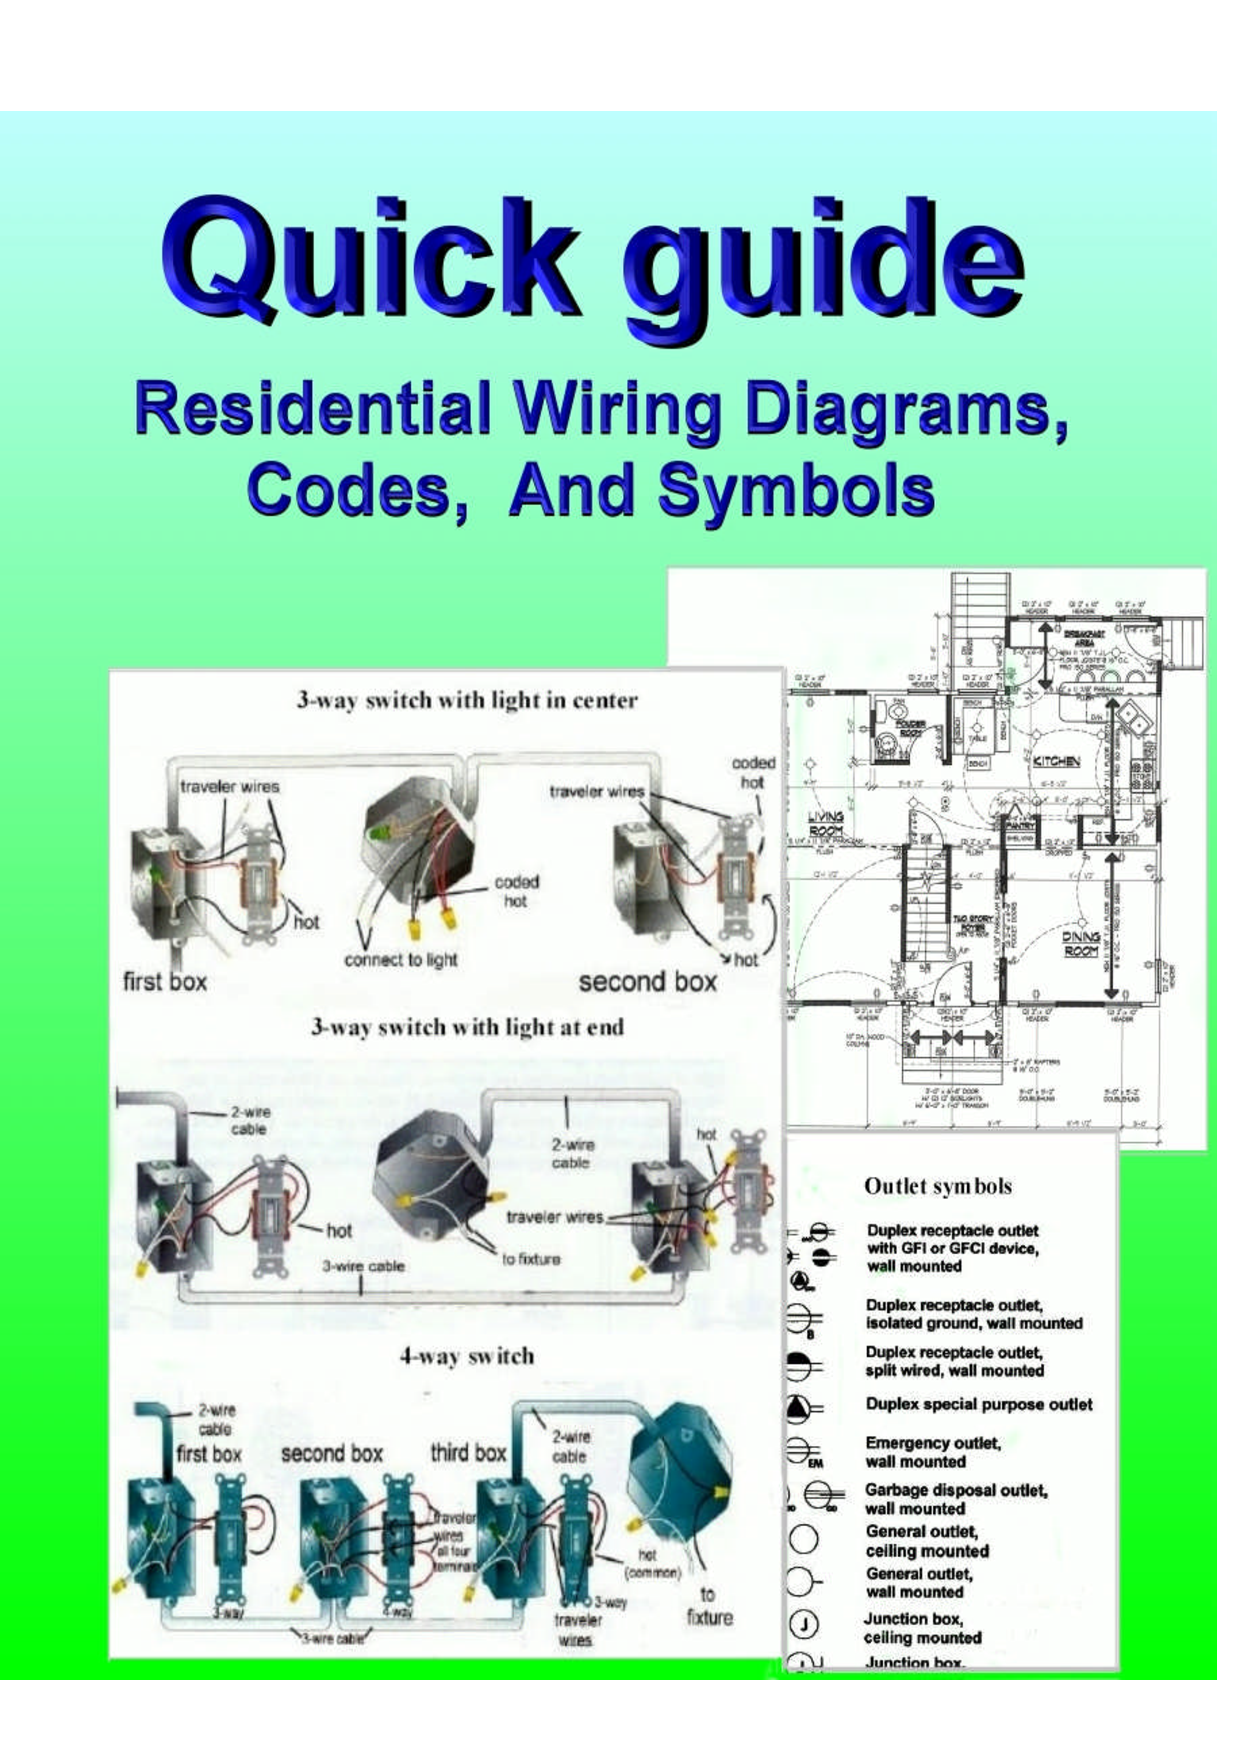 gfci receptacle wiring diagram gfci image wiring how to wire a switched outlet power switch images on gfci receptacle wiring diagram